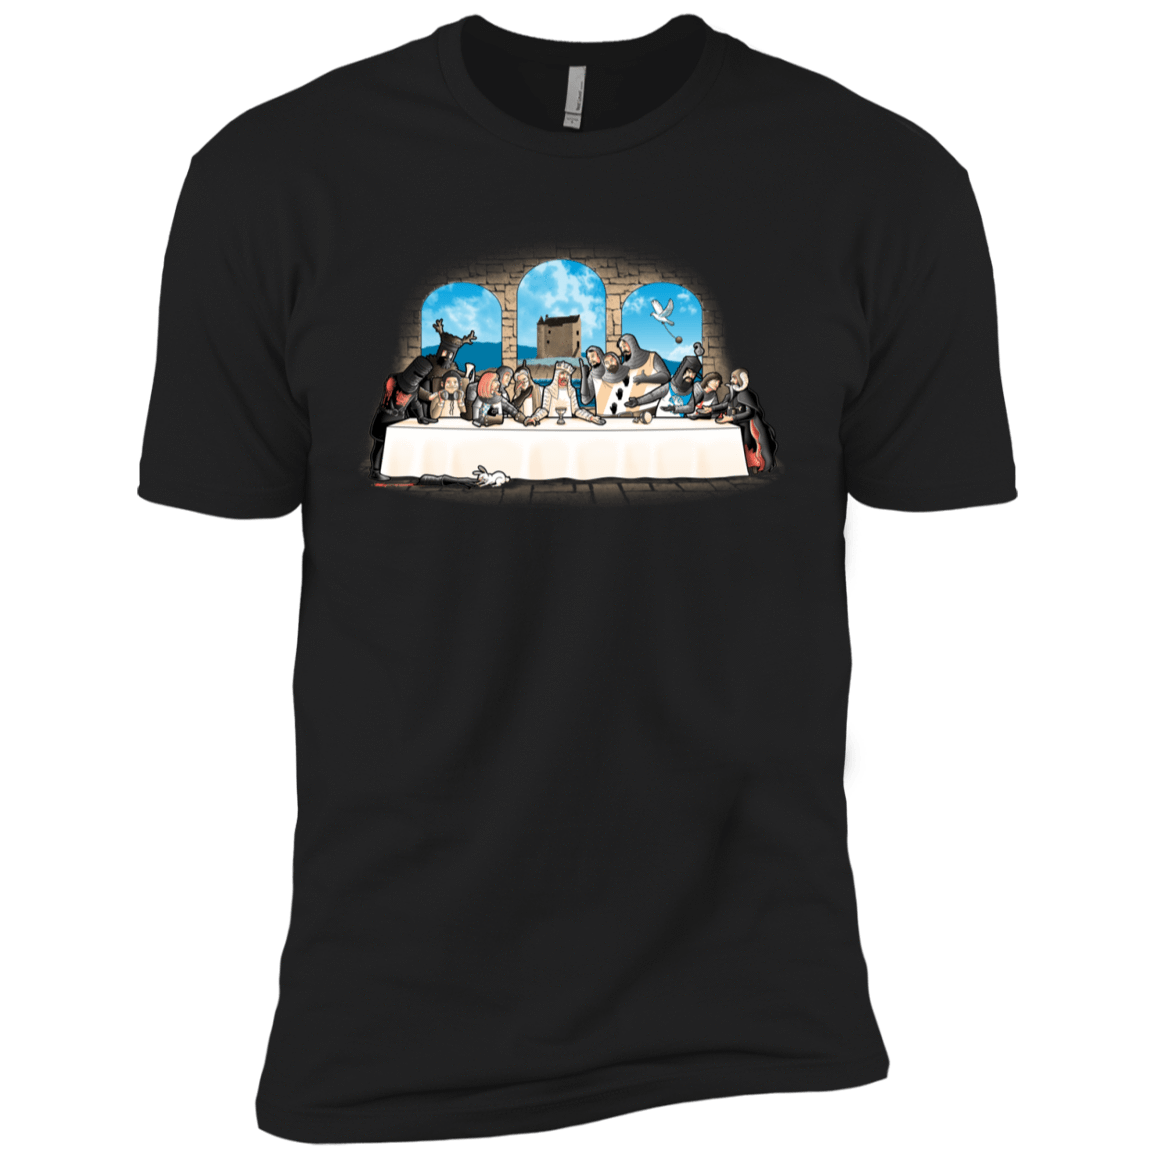 Holy Grail Dinner Boys Premium T-Shirt